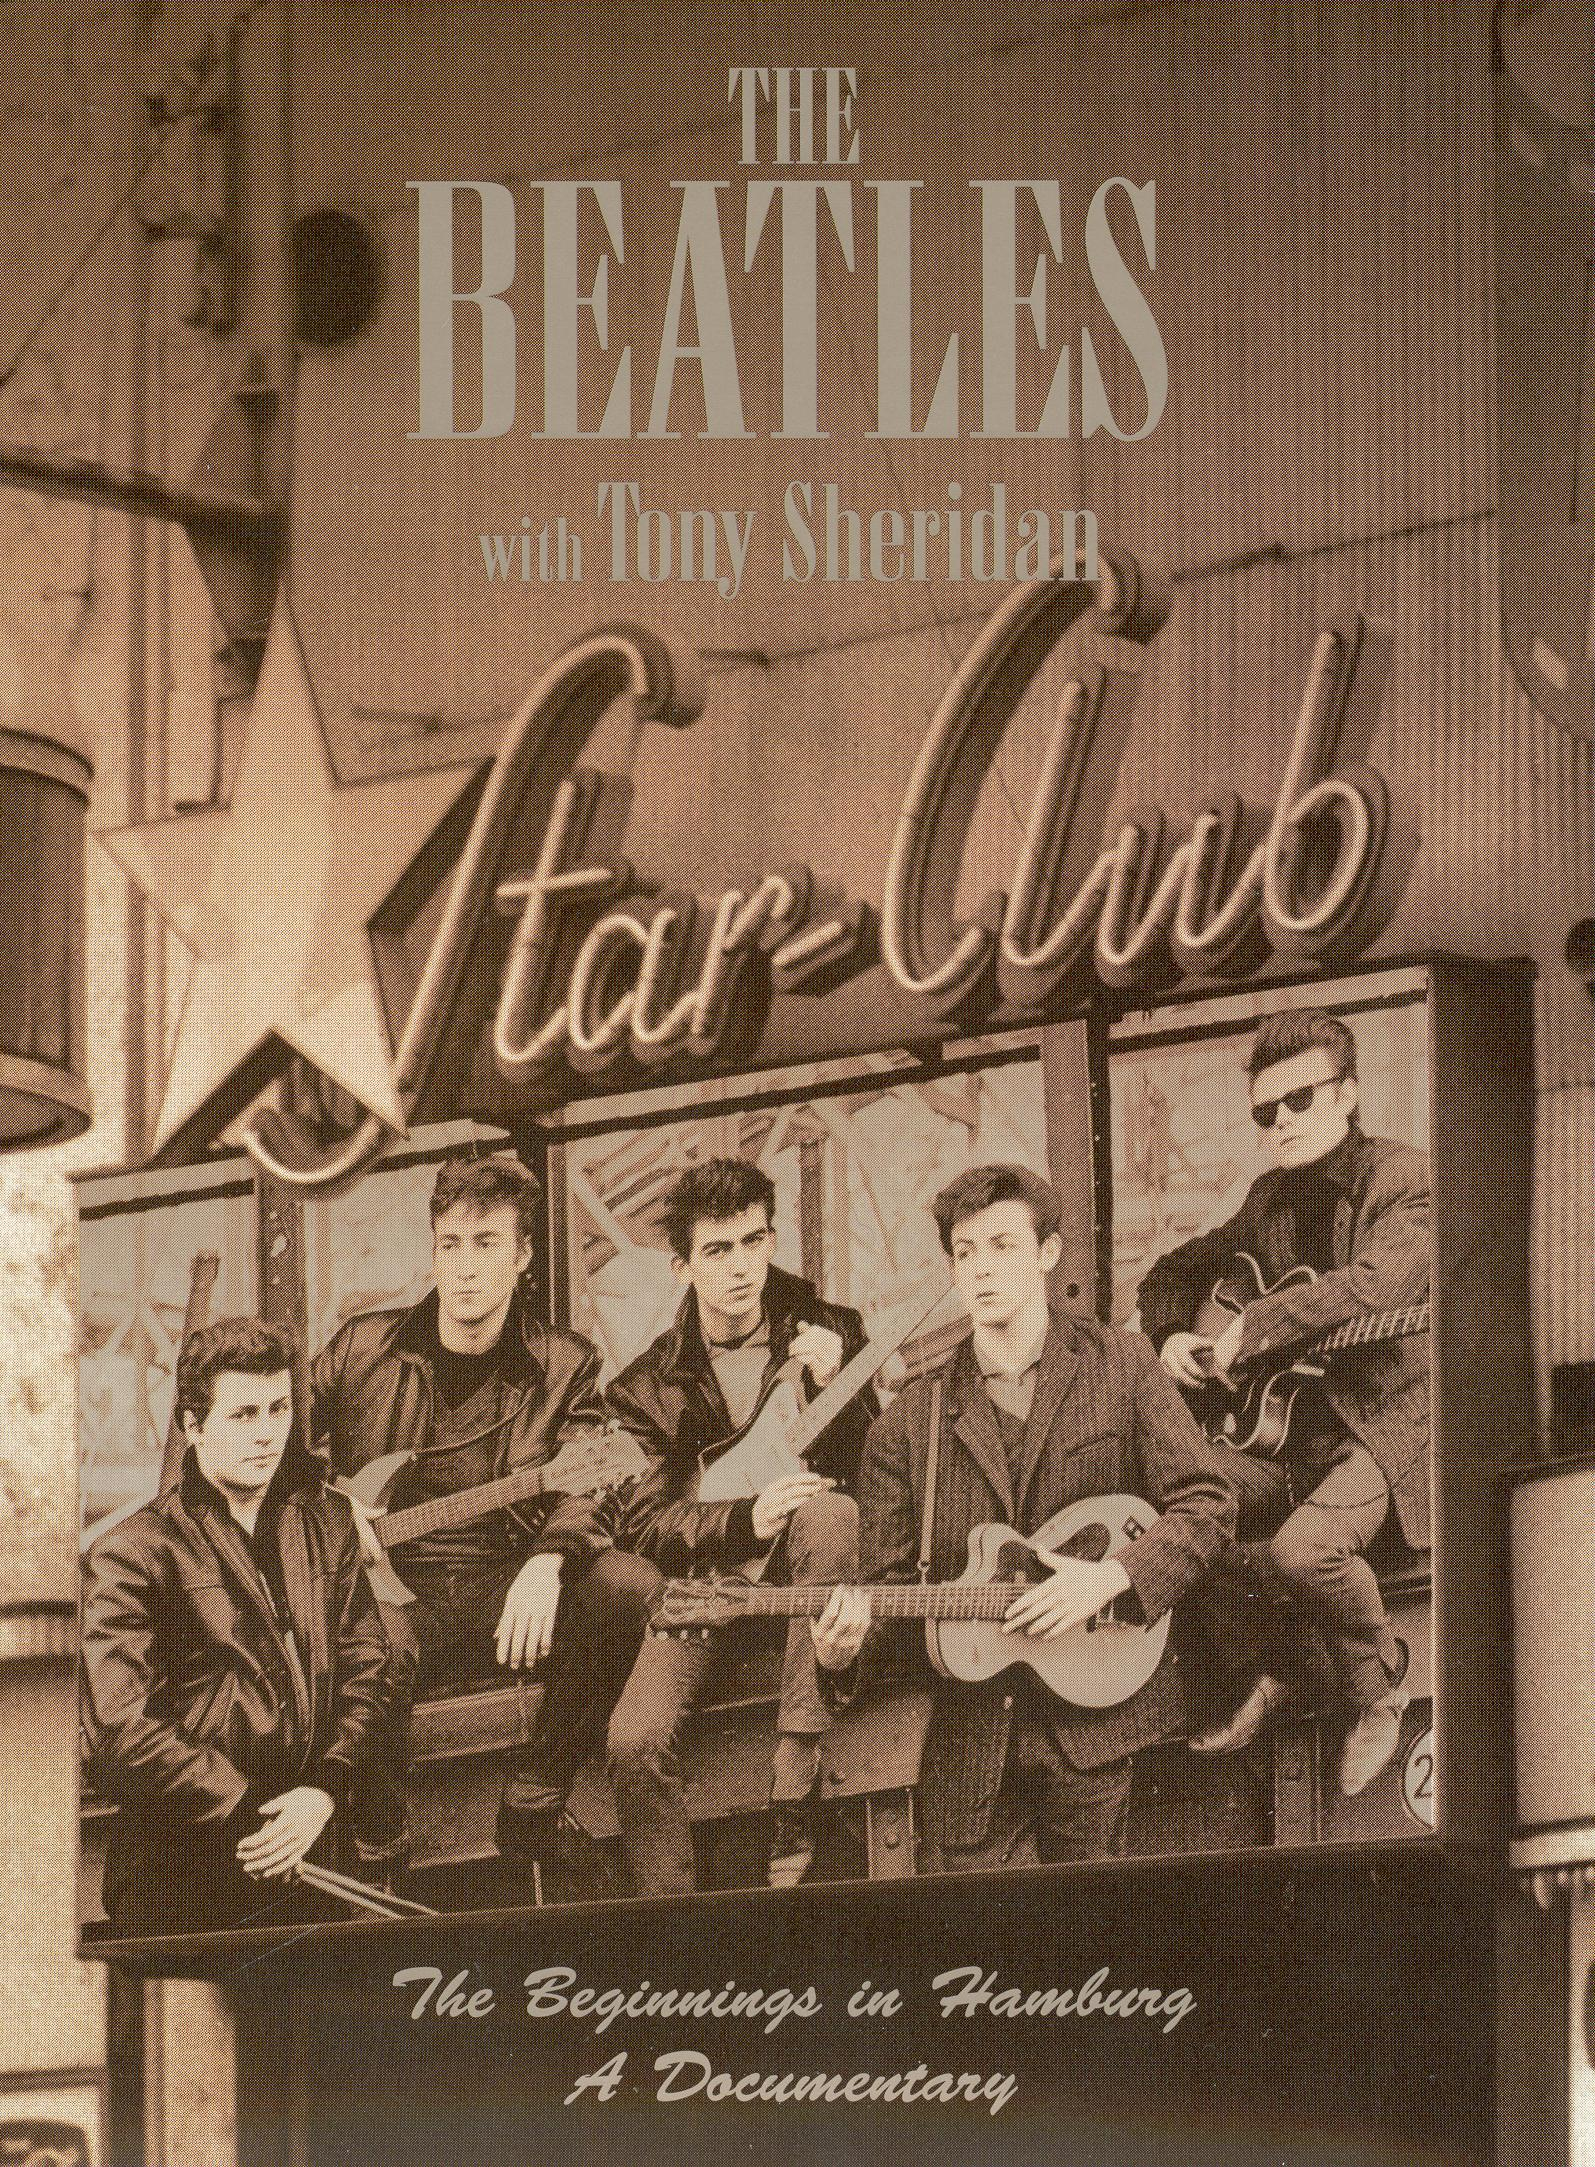 The Beatles With Tony Sheridan: The Beginnings in Hamburg - A Documentary